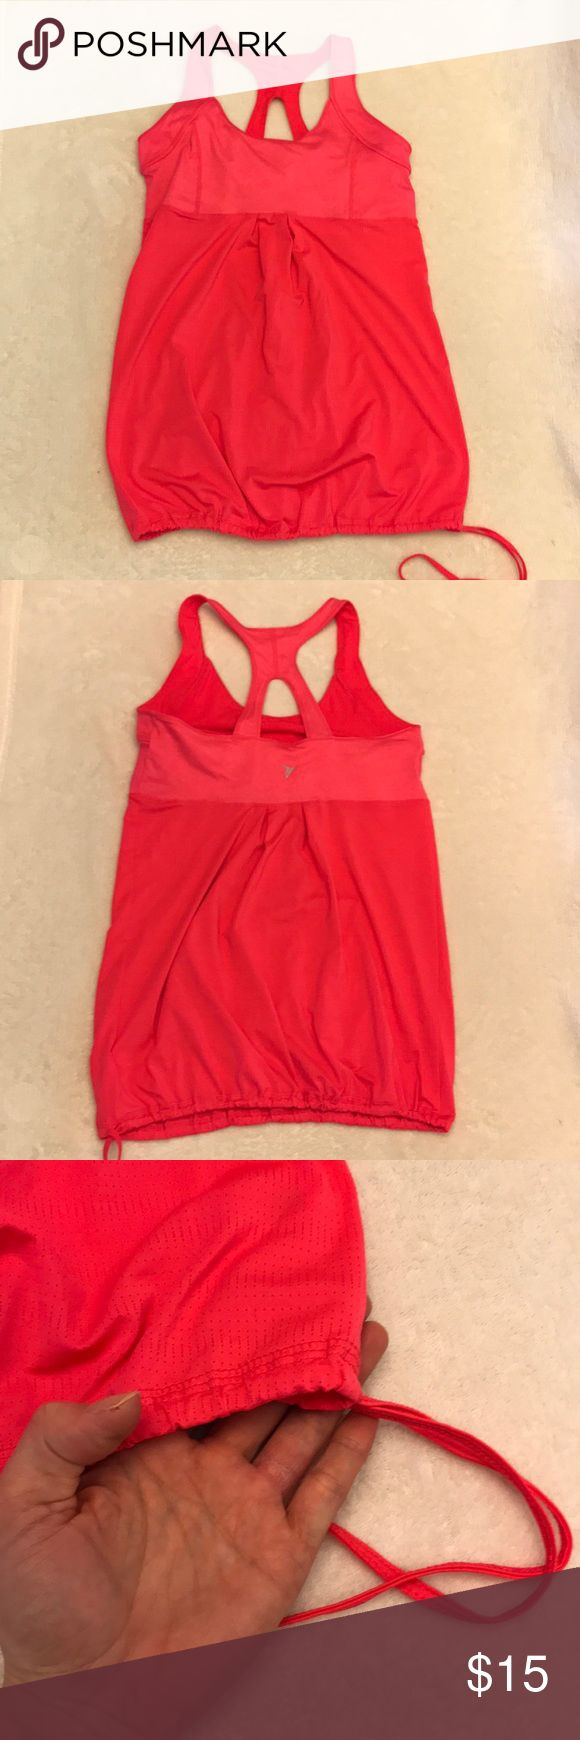 Old Navy Athletic Tank *Old Navy Activ Tank  *Stretchy Spandex Material-Loose Fit *Has tie at bottom to cinch at waist *Great condition *No stains, tears or snags  (Smoke & pet free home) Old Navy Tops Tank Tops